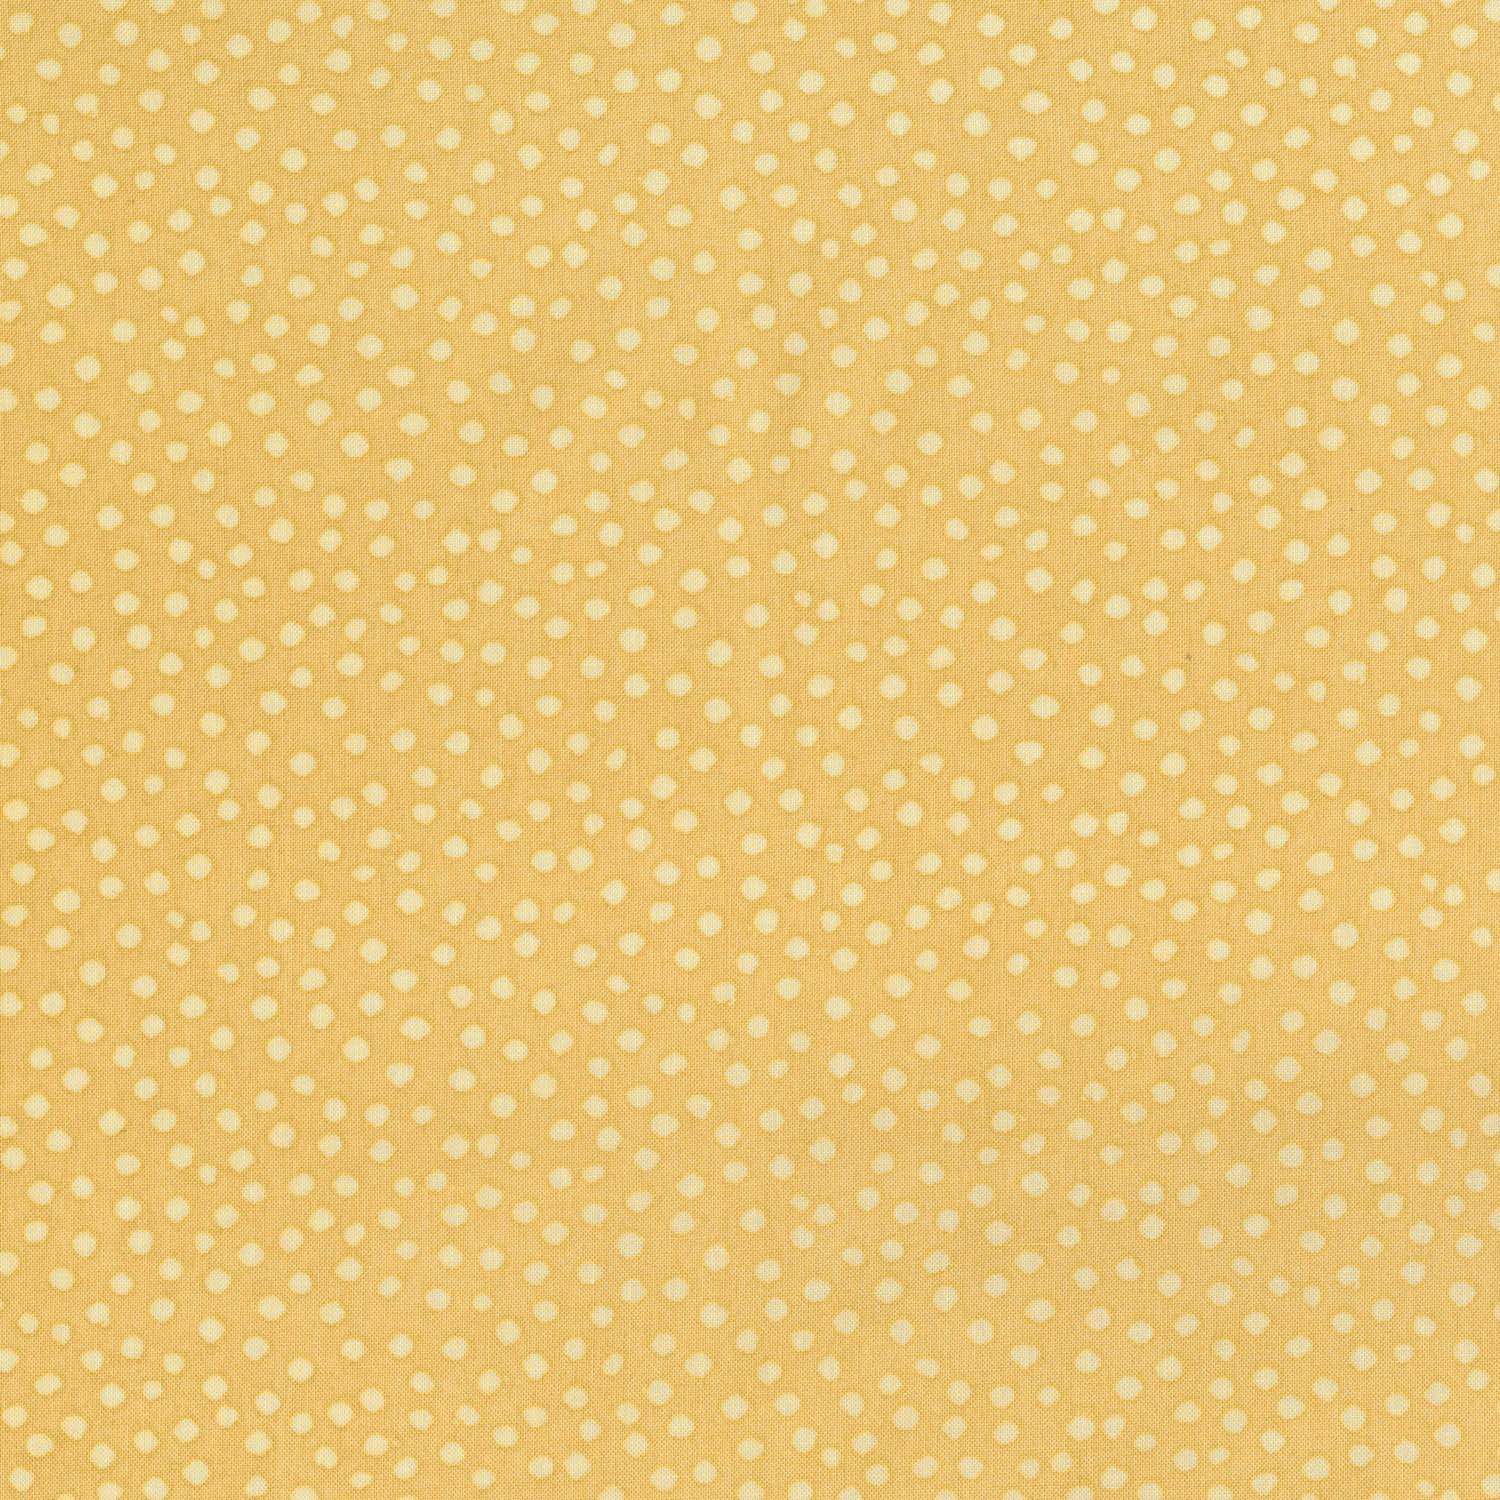 2843-003 SLOPPY DOTS - CREAM